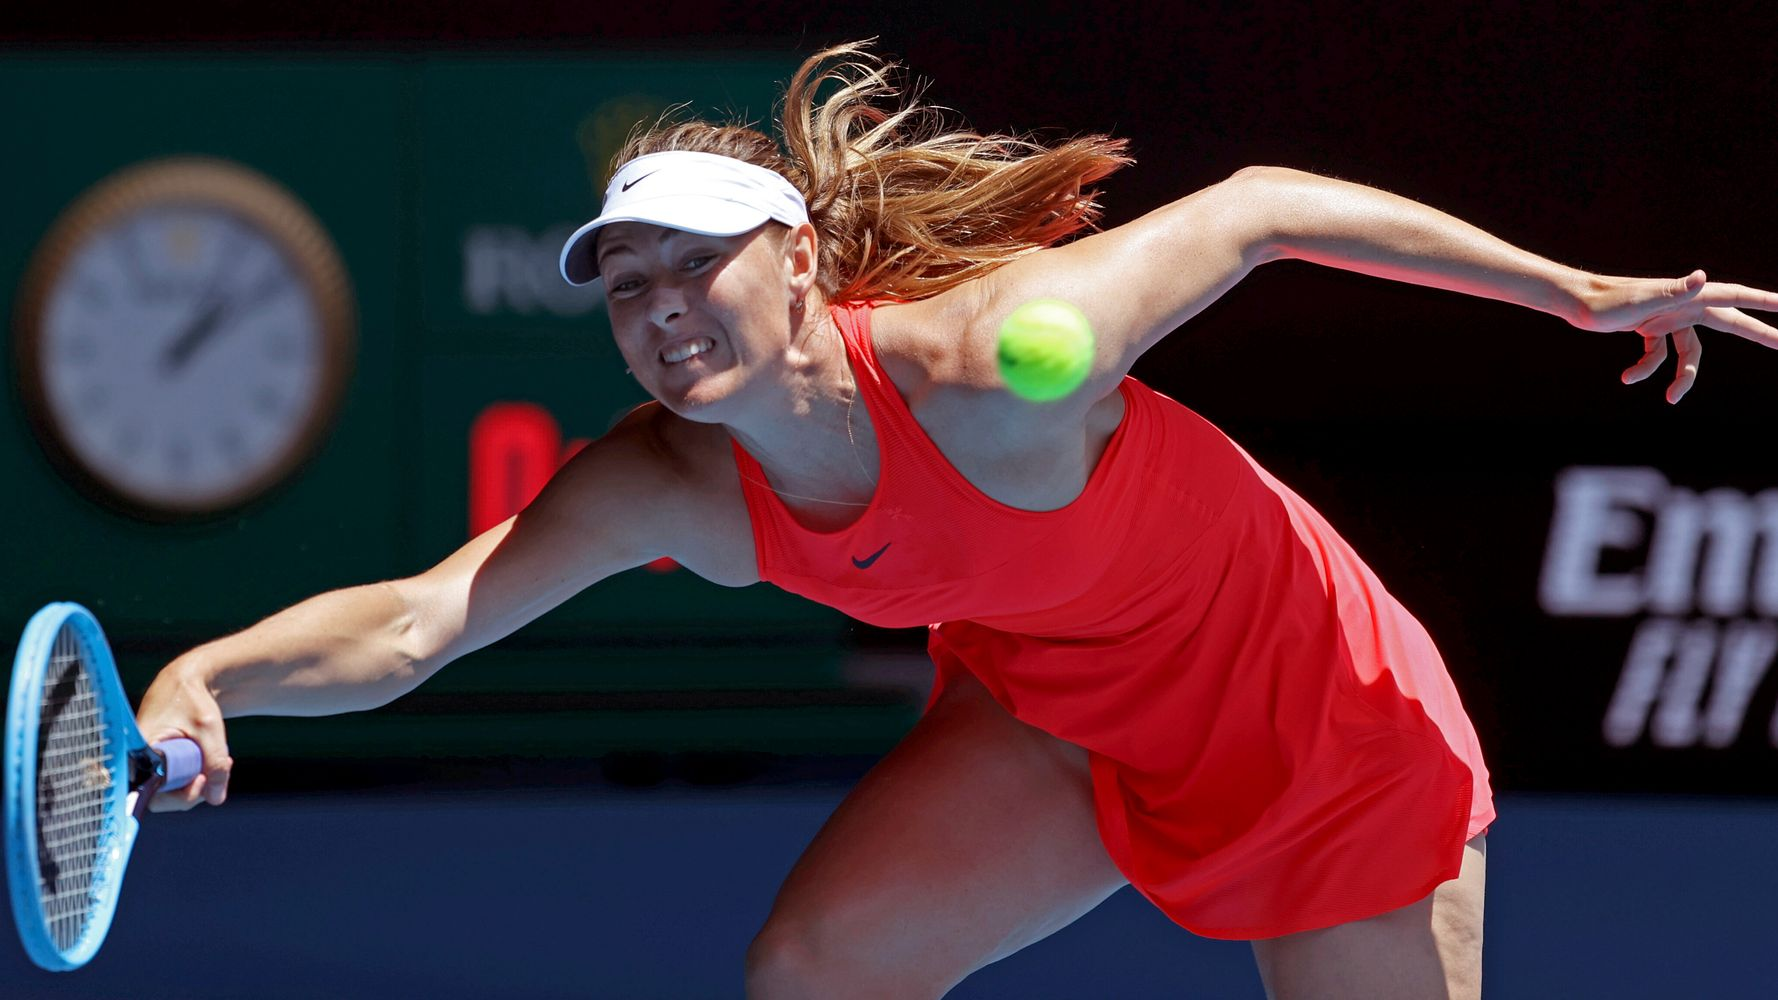 Westlake Legal Group 5e567858230000270b39c4b9 Tennis Champion Maria Sharapova Retires At 32